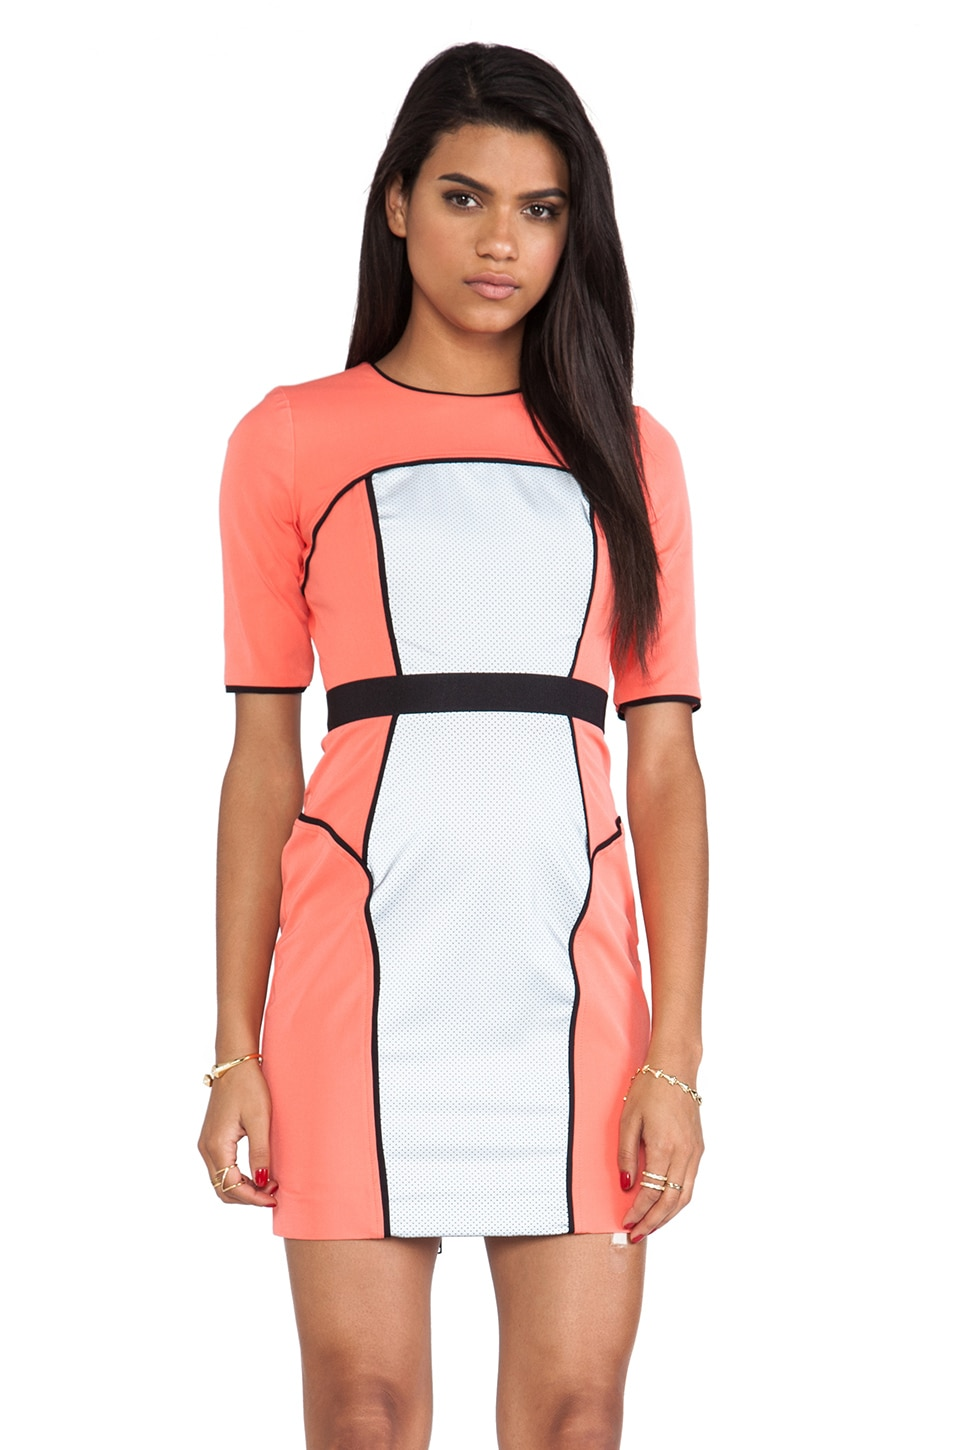 MILLY Italian Power Stretch Reflective Sleeve Dress in Coral